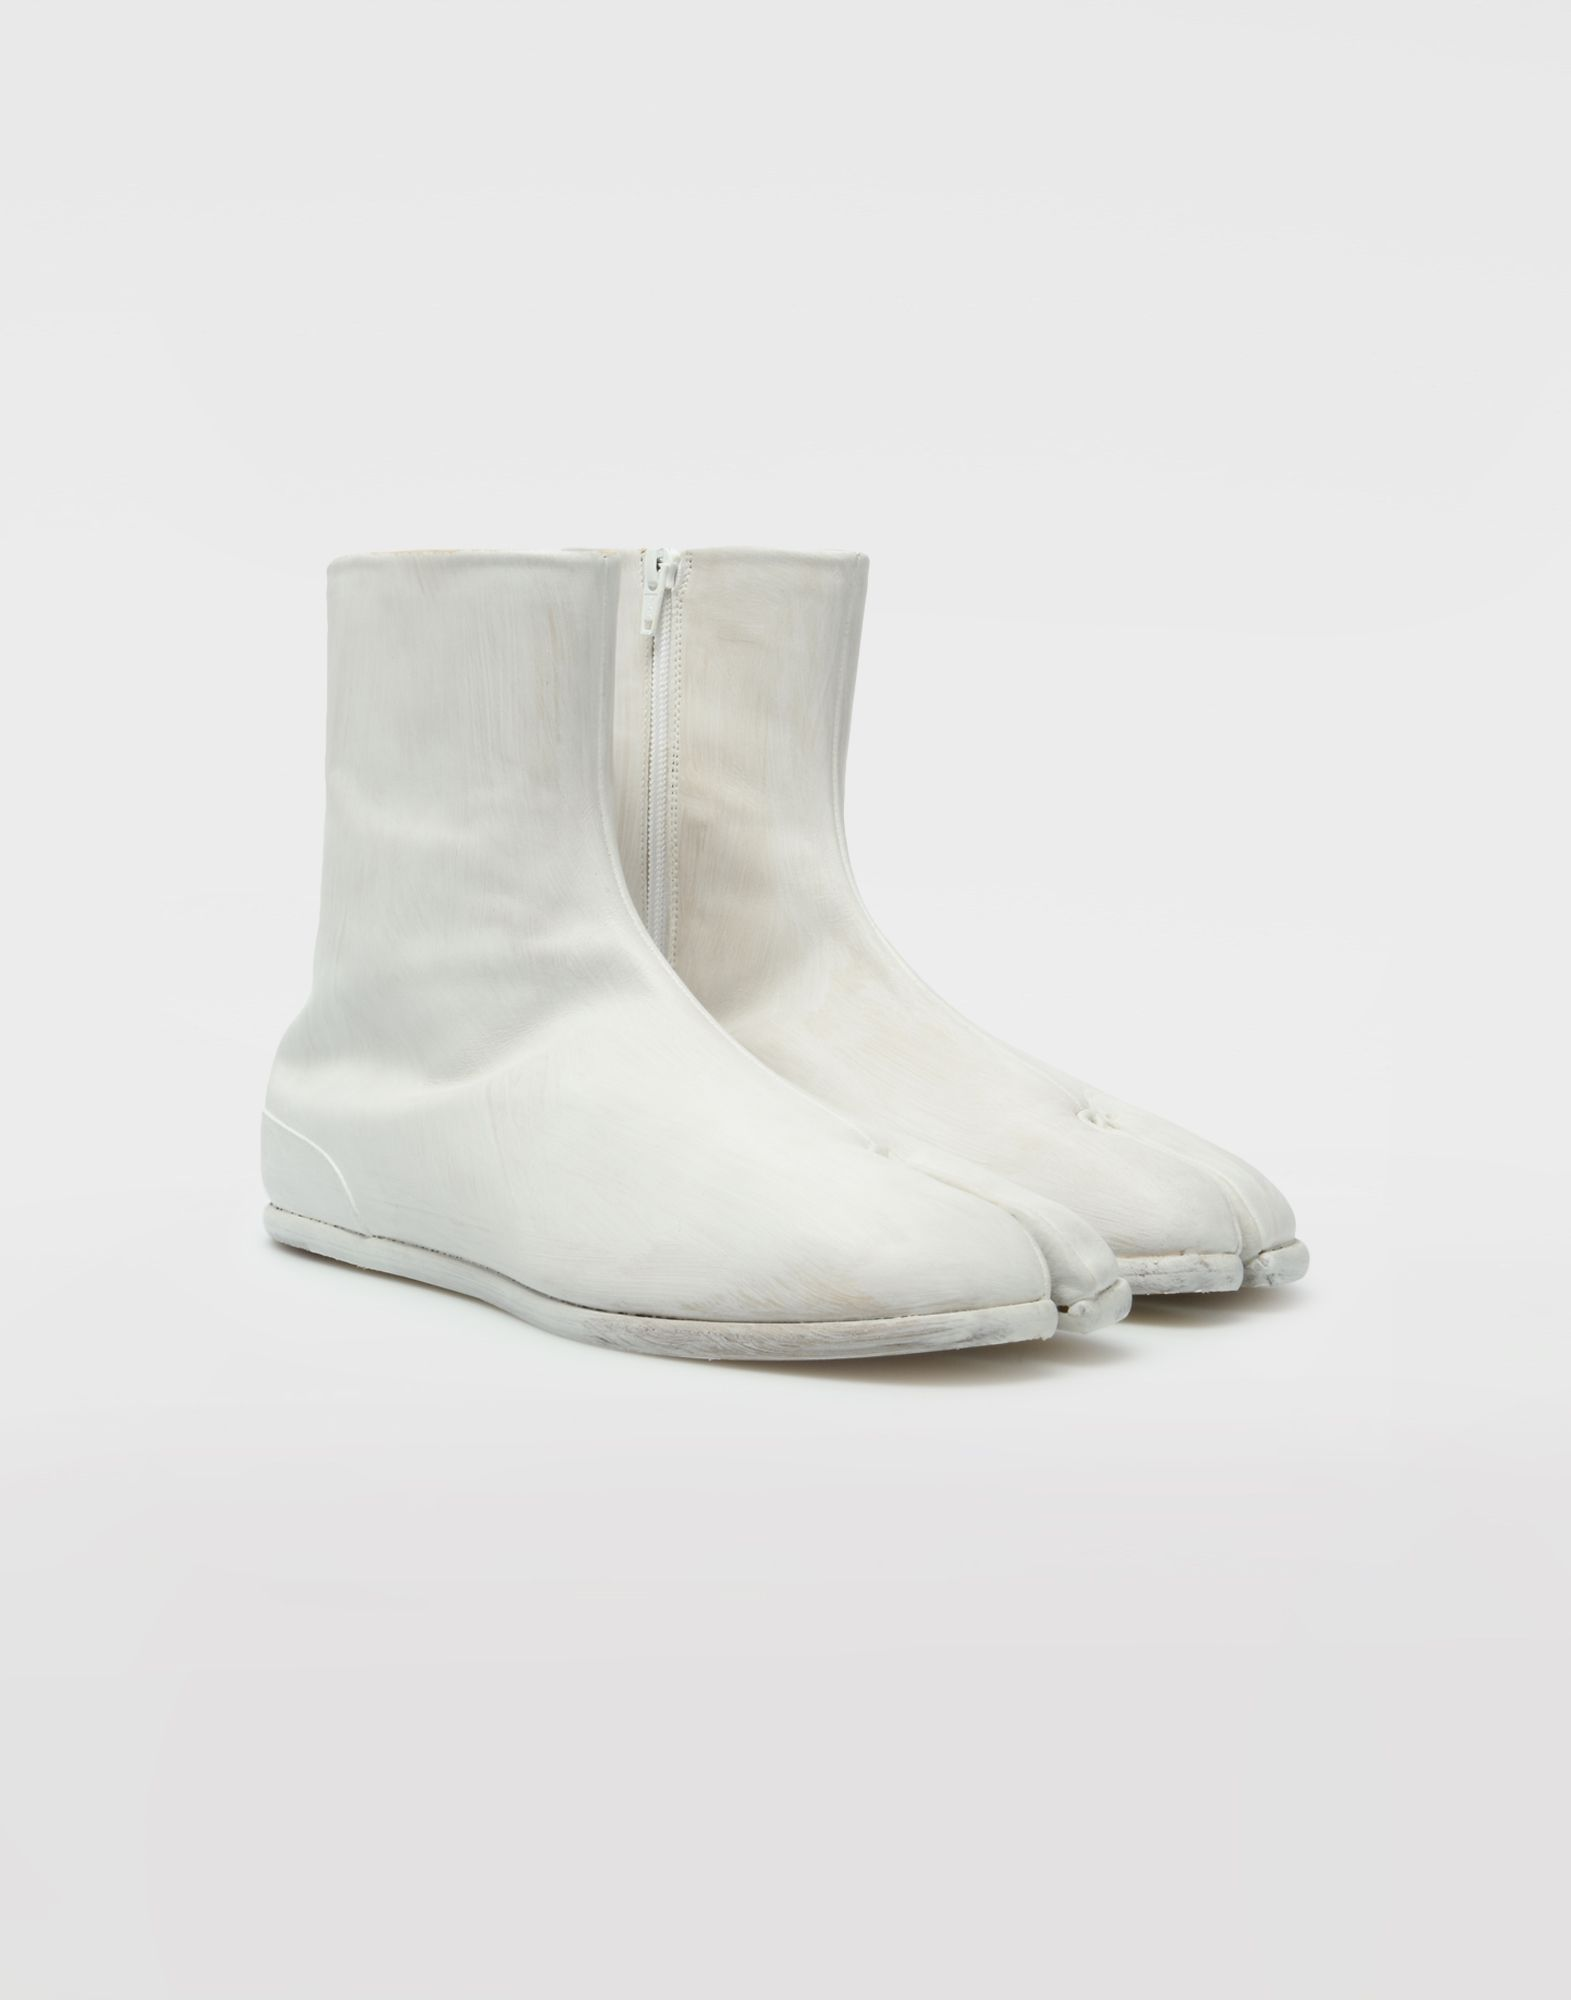 MAISON MARGIELA Painted leather Tabi boots Tabi boots Man d